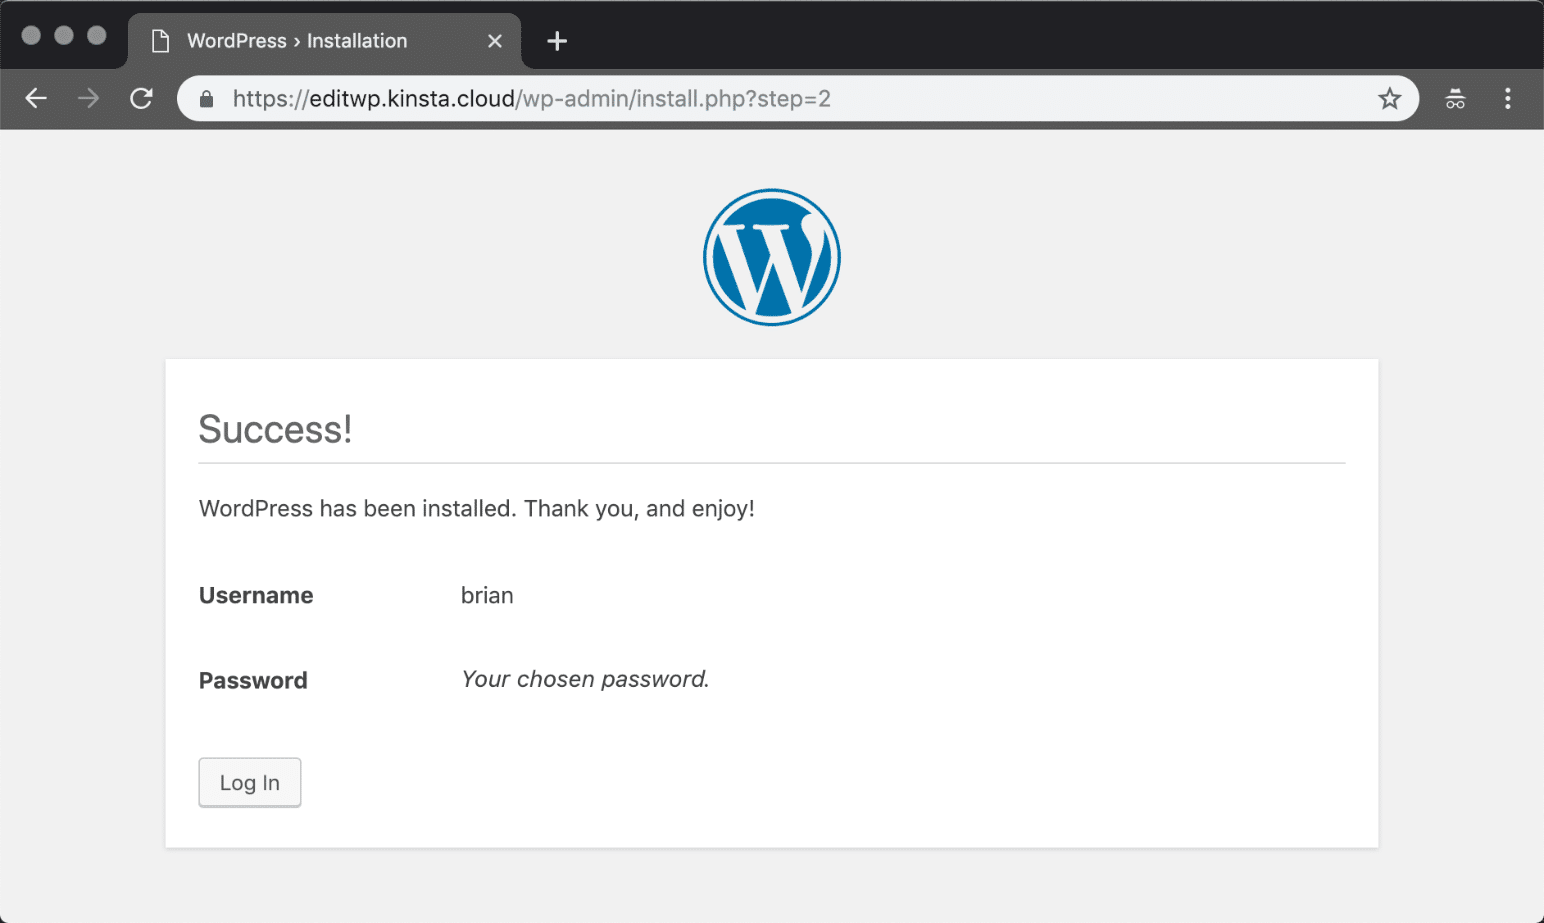 Manually install WordPress success